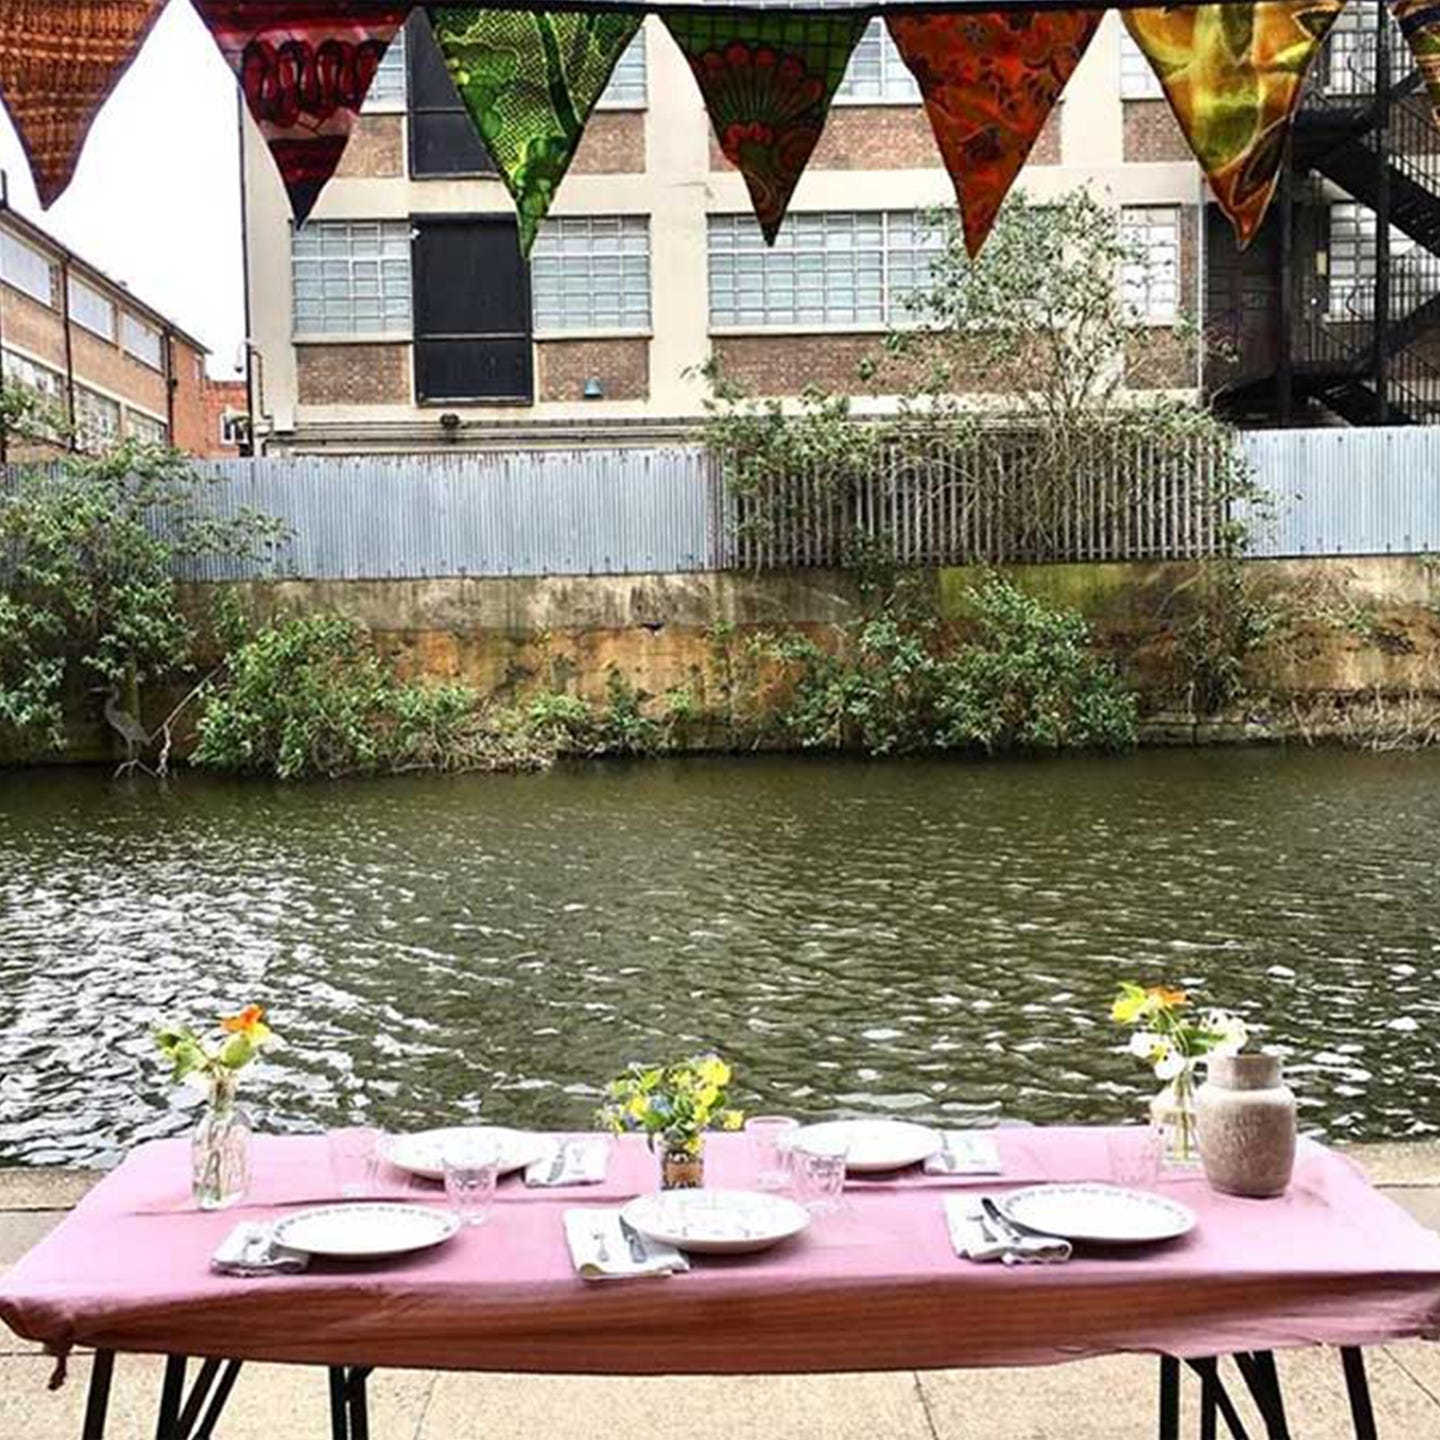 Image from Towpath Café